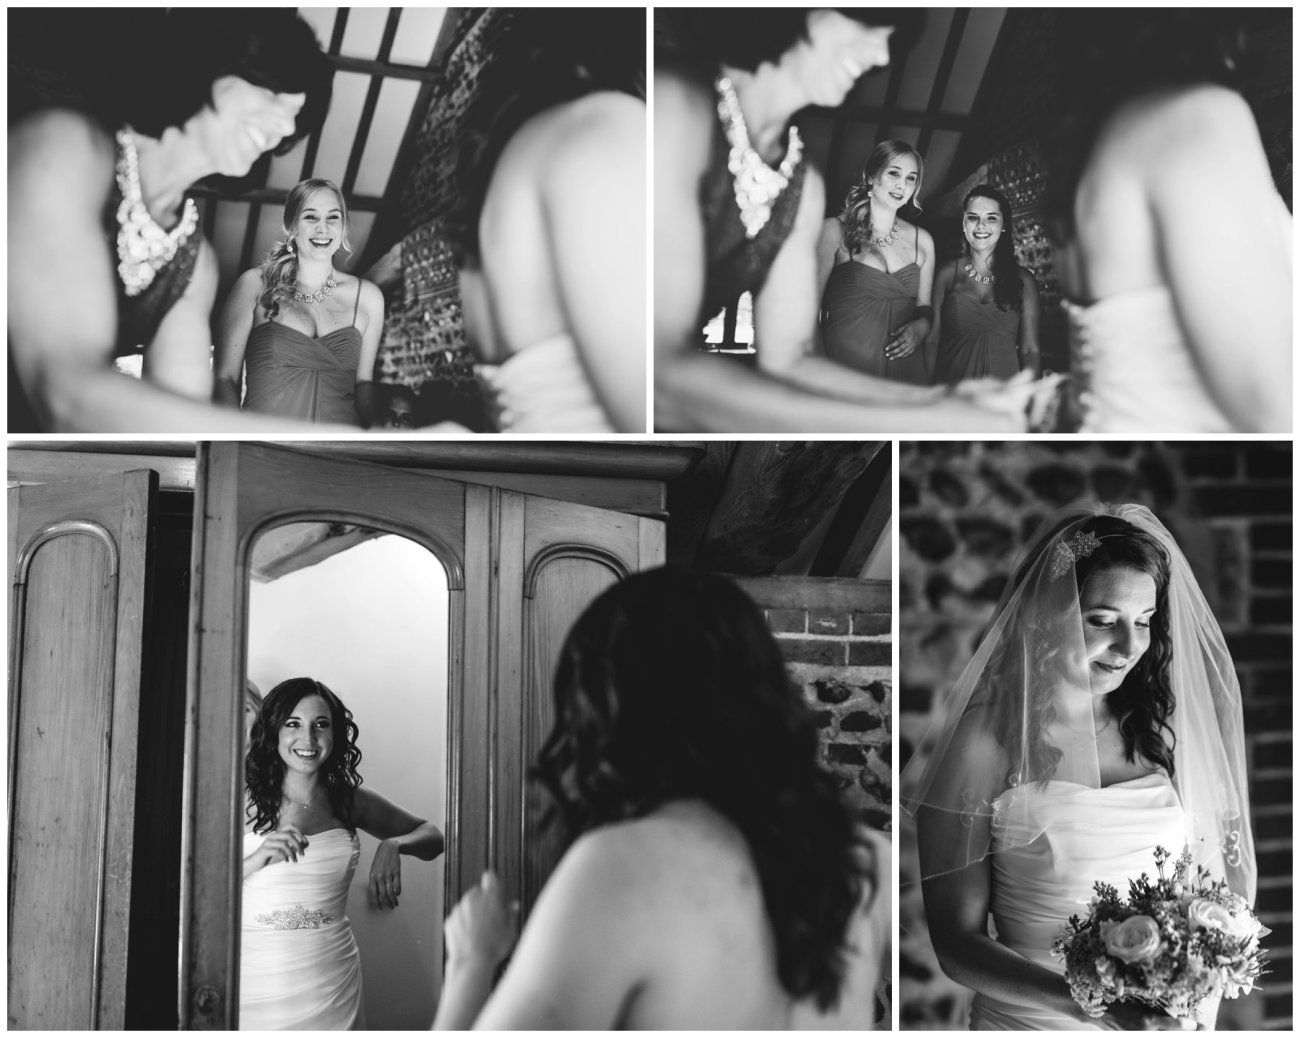 CHAUCER BARN WEDDING - BEN AND BROOKE - NORFOLK WEDDING PHOTOGRAPHER